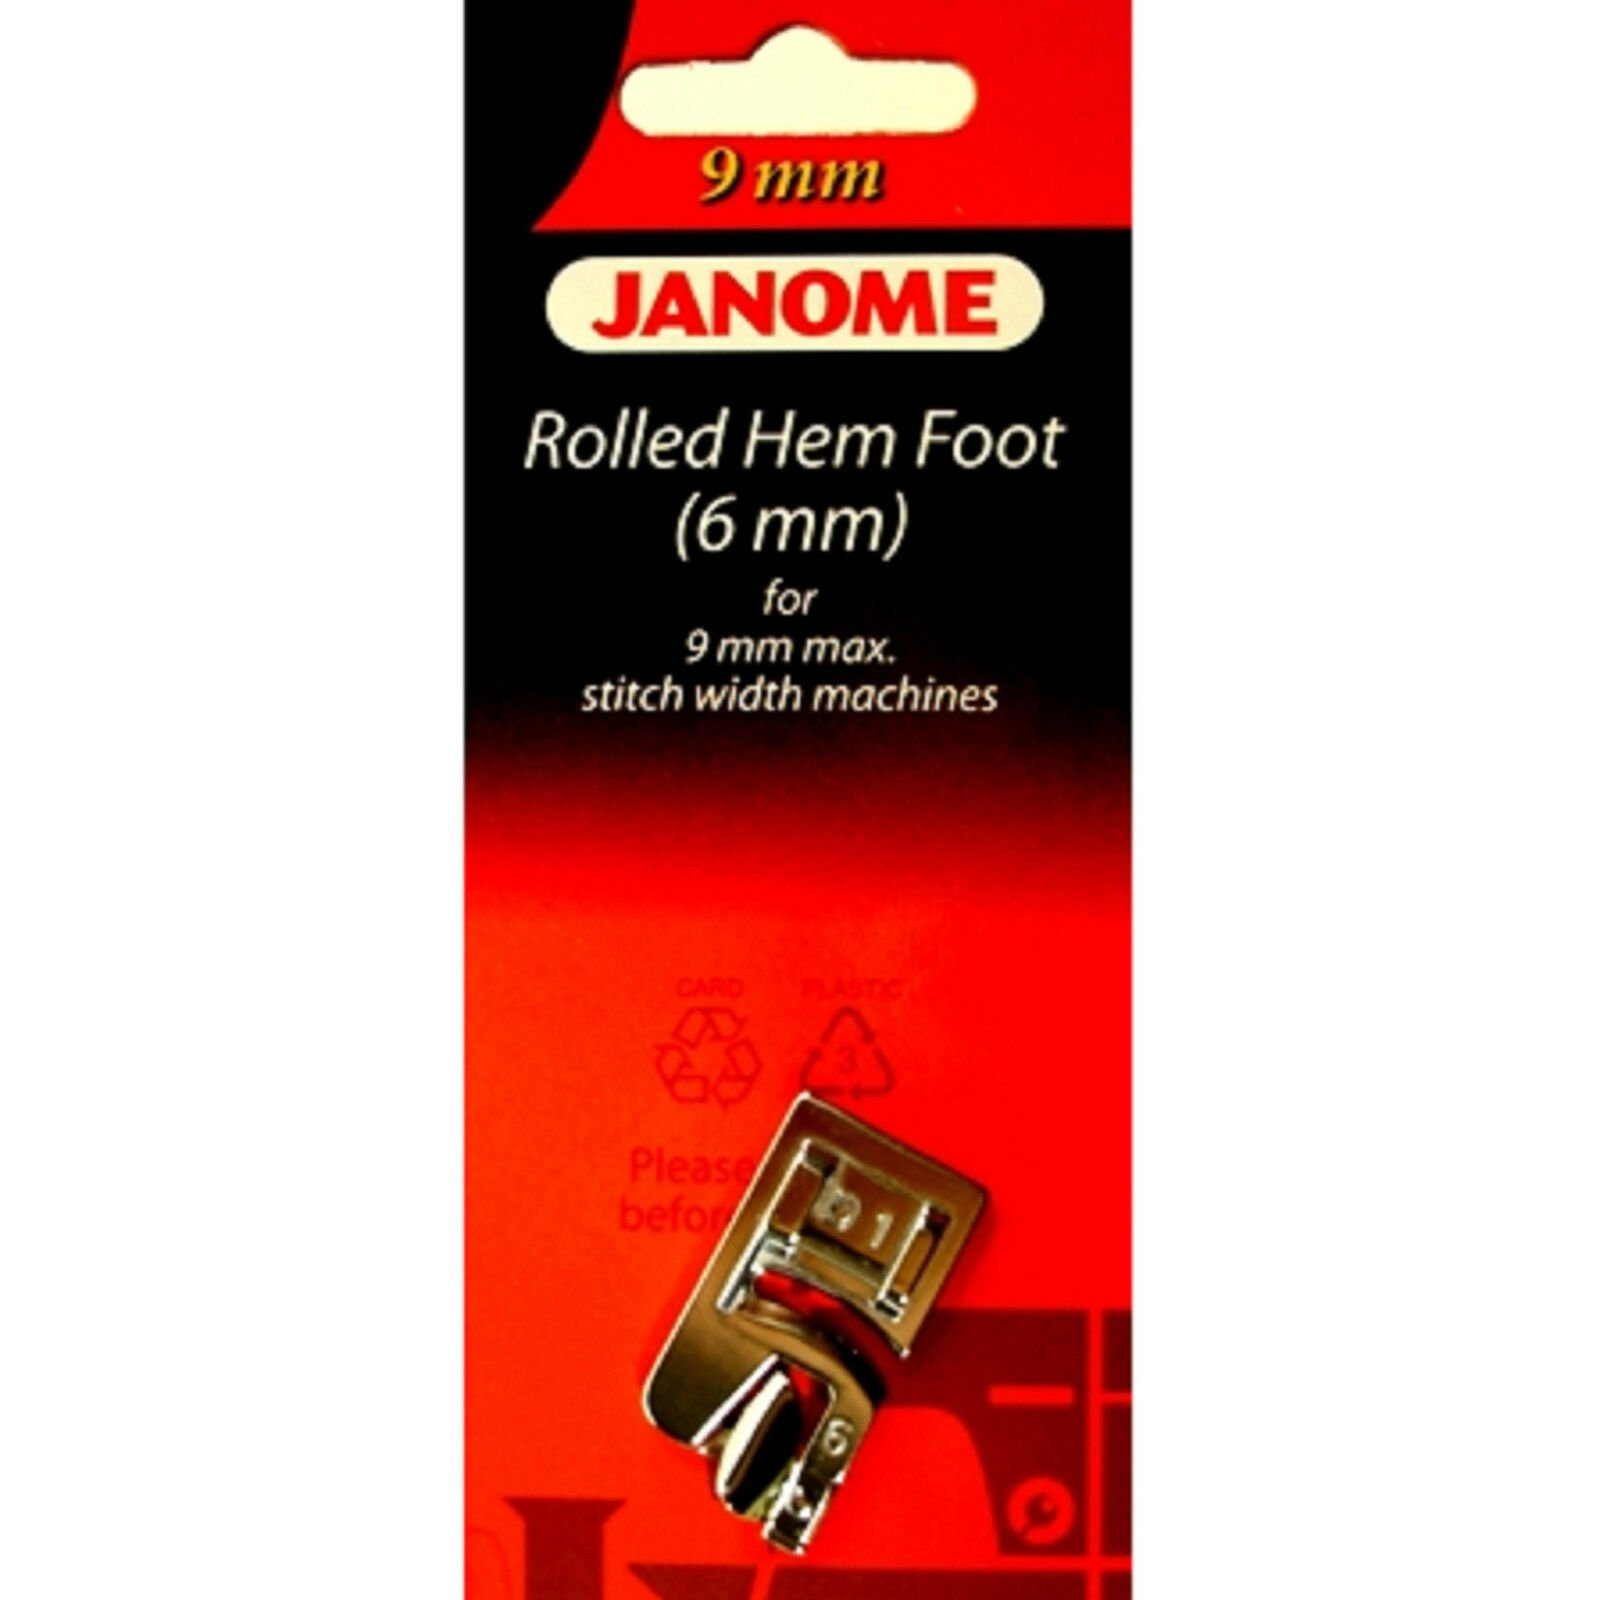 Janome Rolled Hem Foot 6 mm